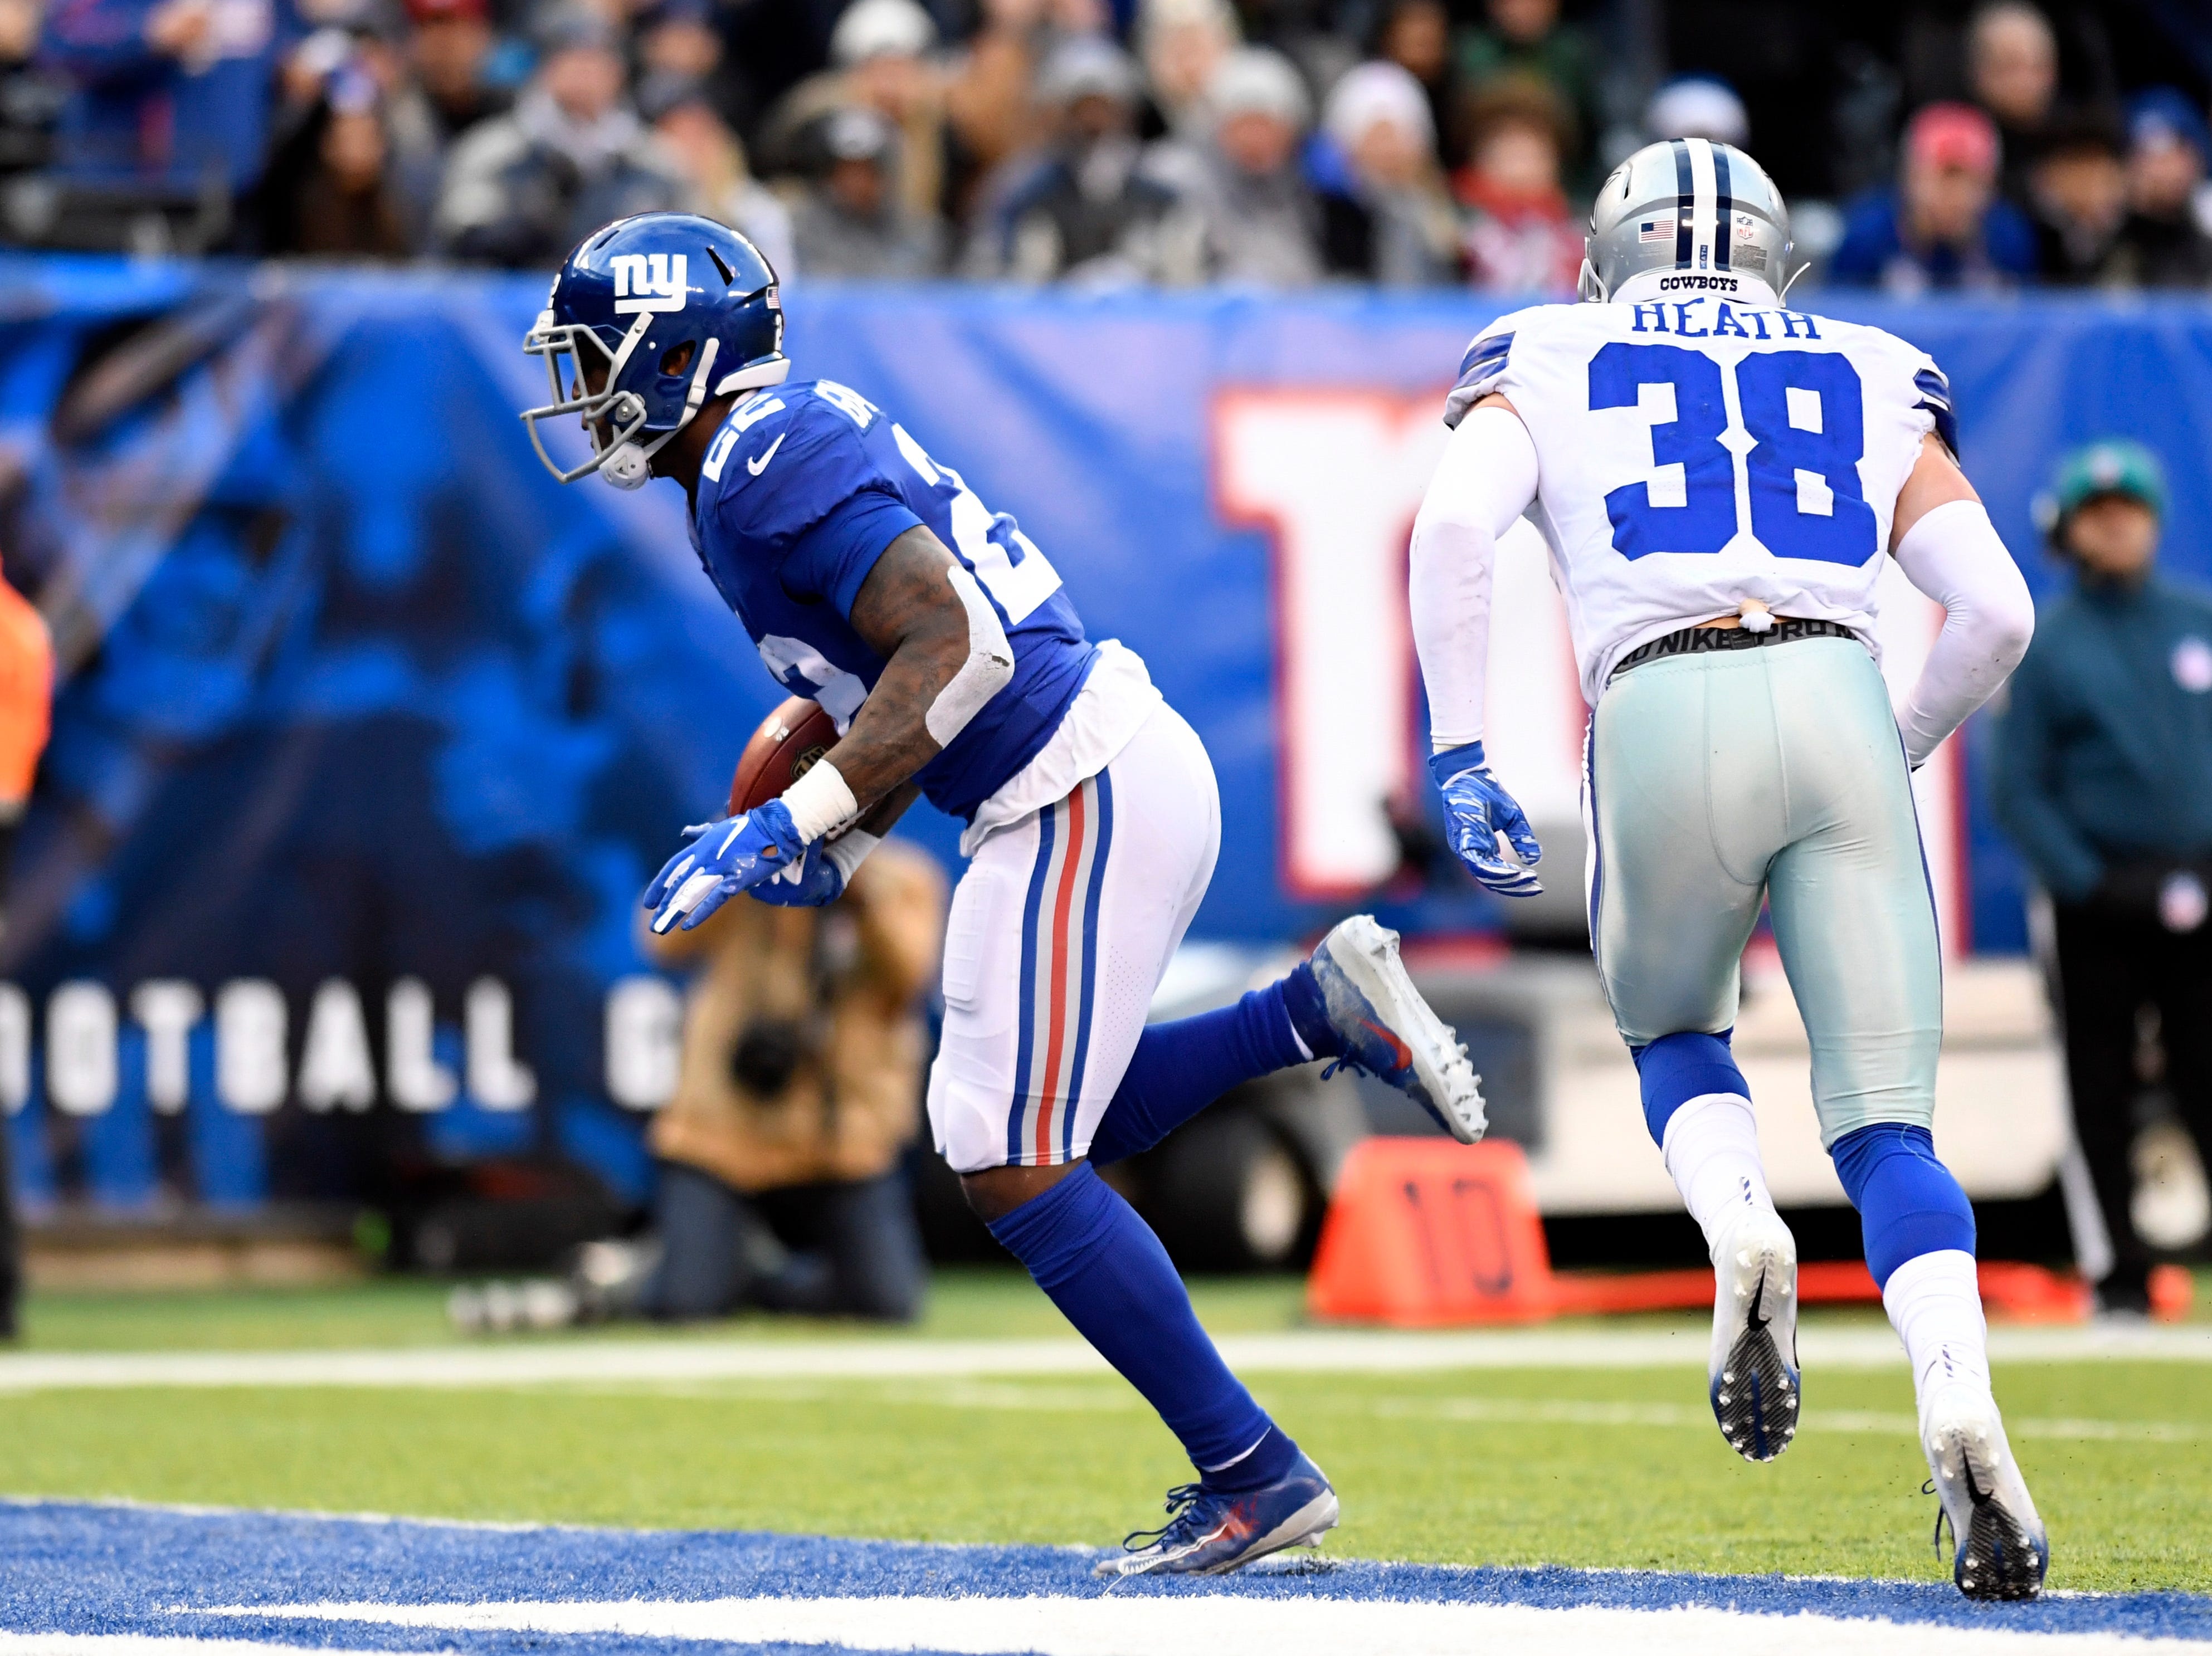 New York Giants running back Wayne Gallman (22) rushes for a touchdown in the fourth quarter. The New York Giants lose to the Dallas Cowboys 36-35 on Sunday, Dec. 30, 2018, in East Rutherford.